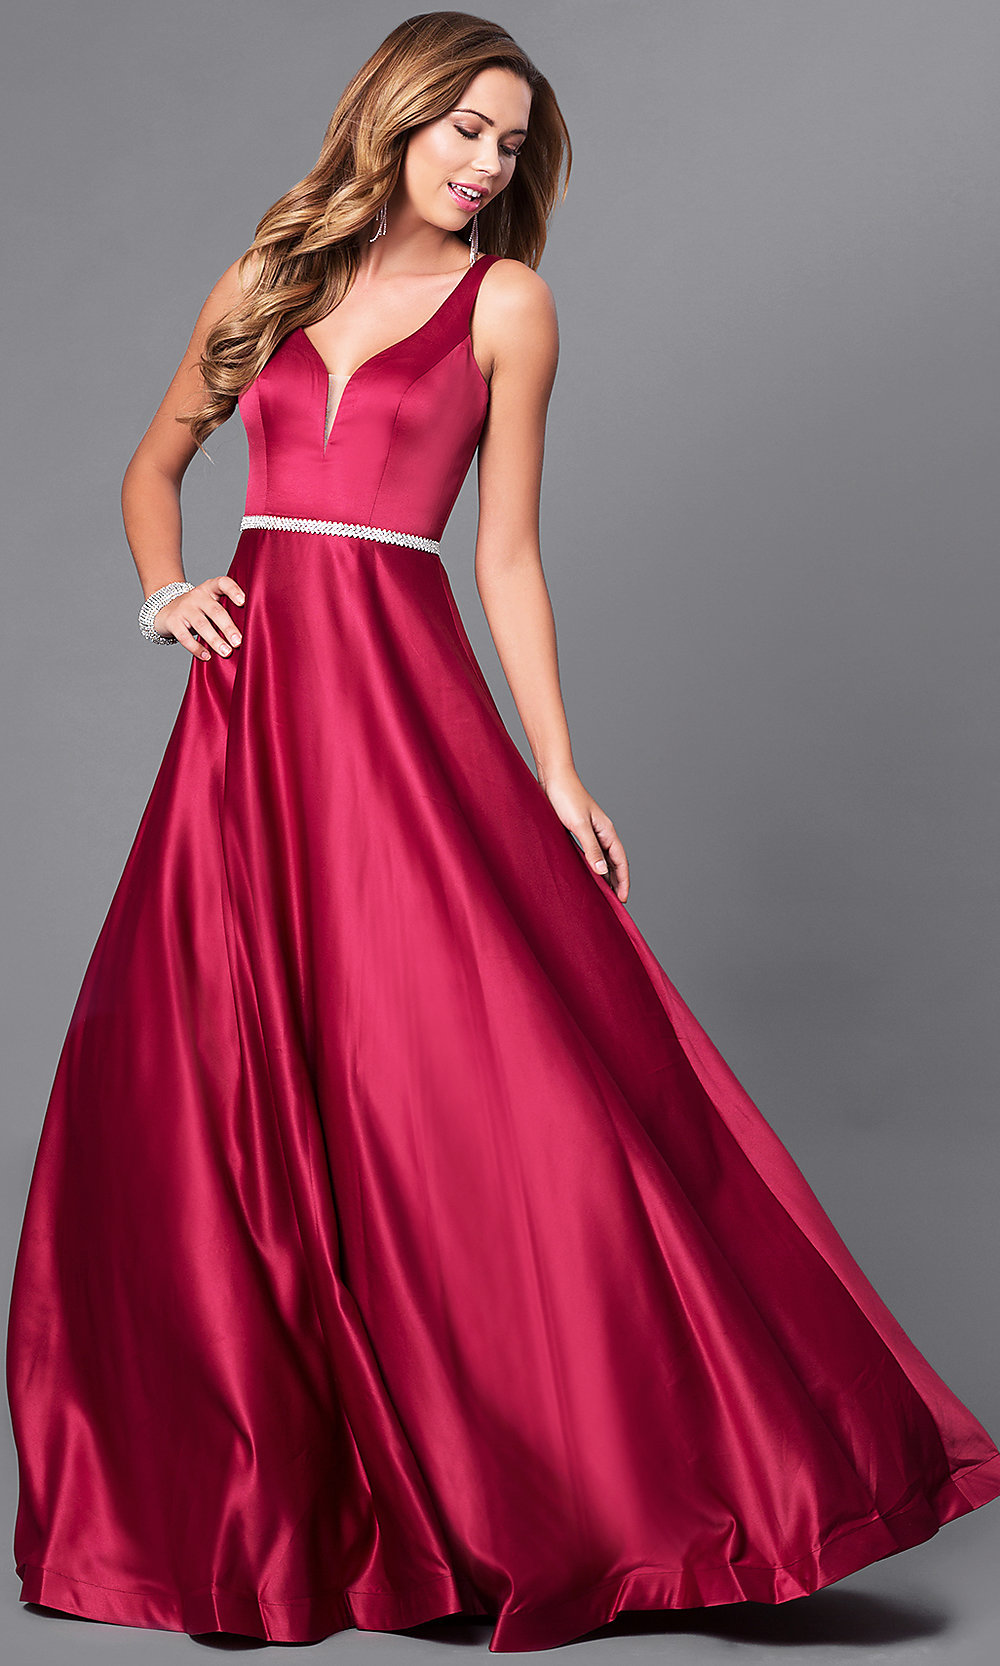 Classic Long V Neck A Line Satin Prom Dress Promgirl